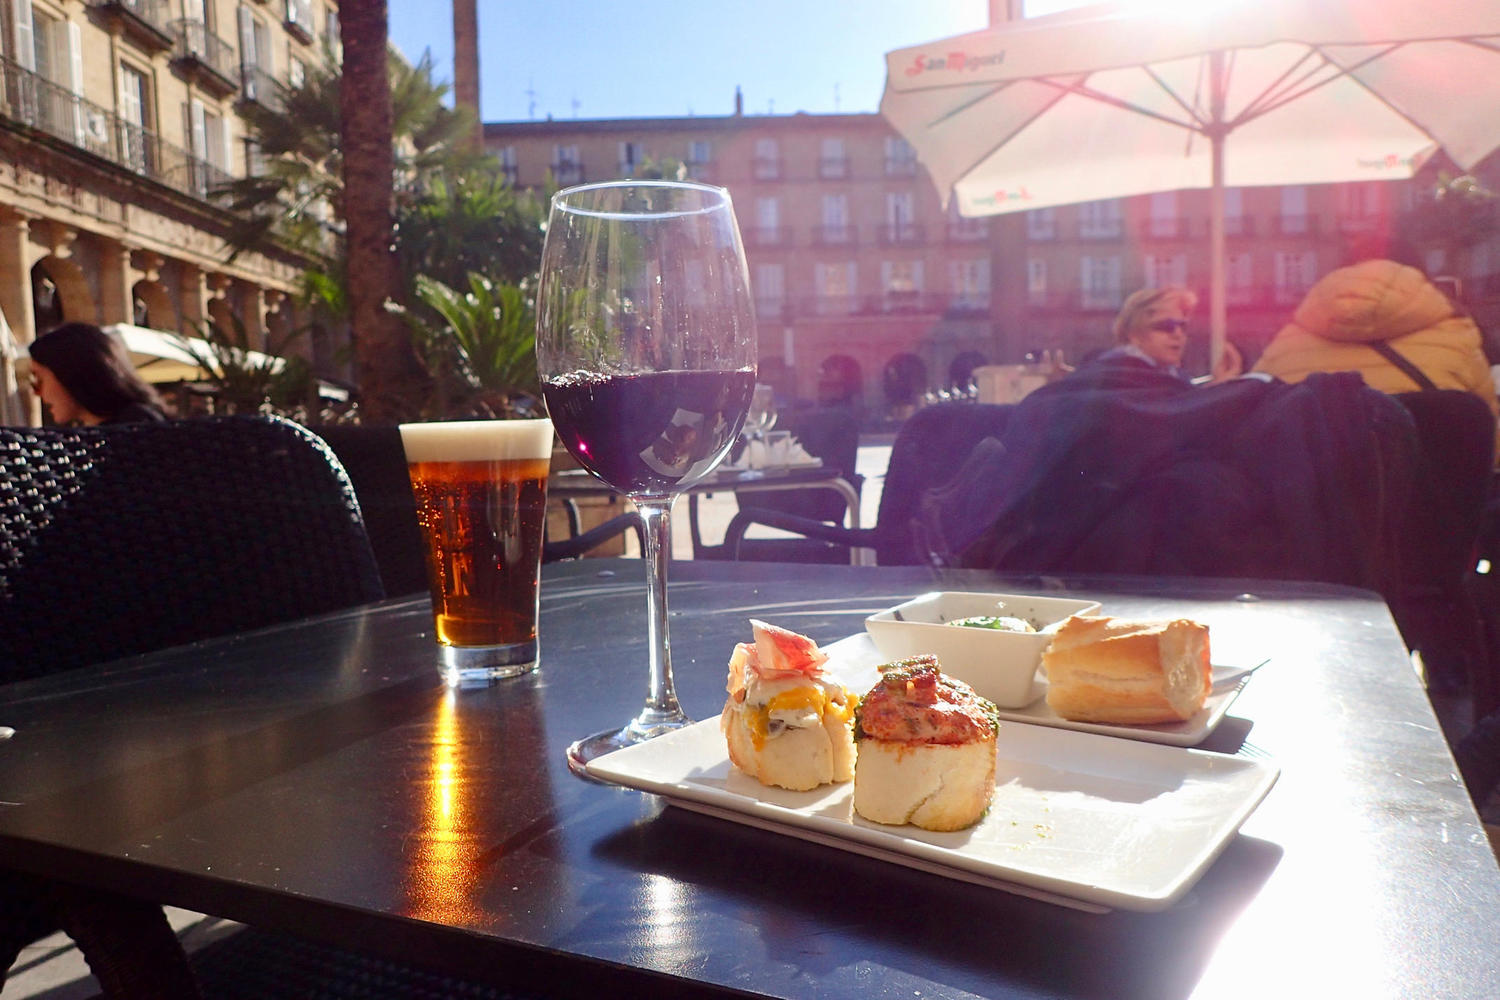 Pintxos lunch in the sun in Plaza Nueva, Bilbao